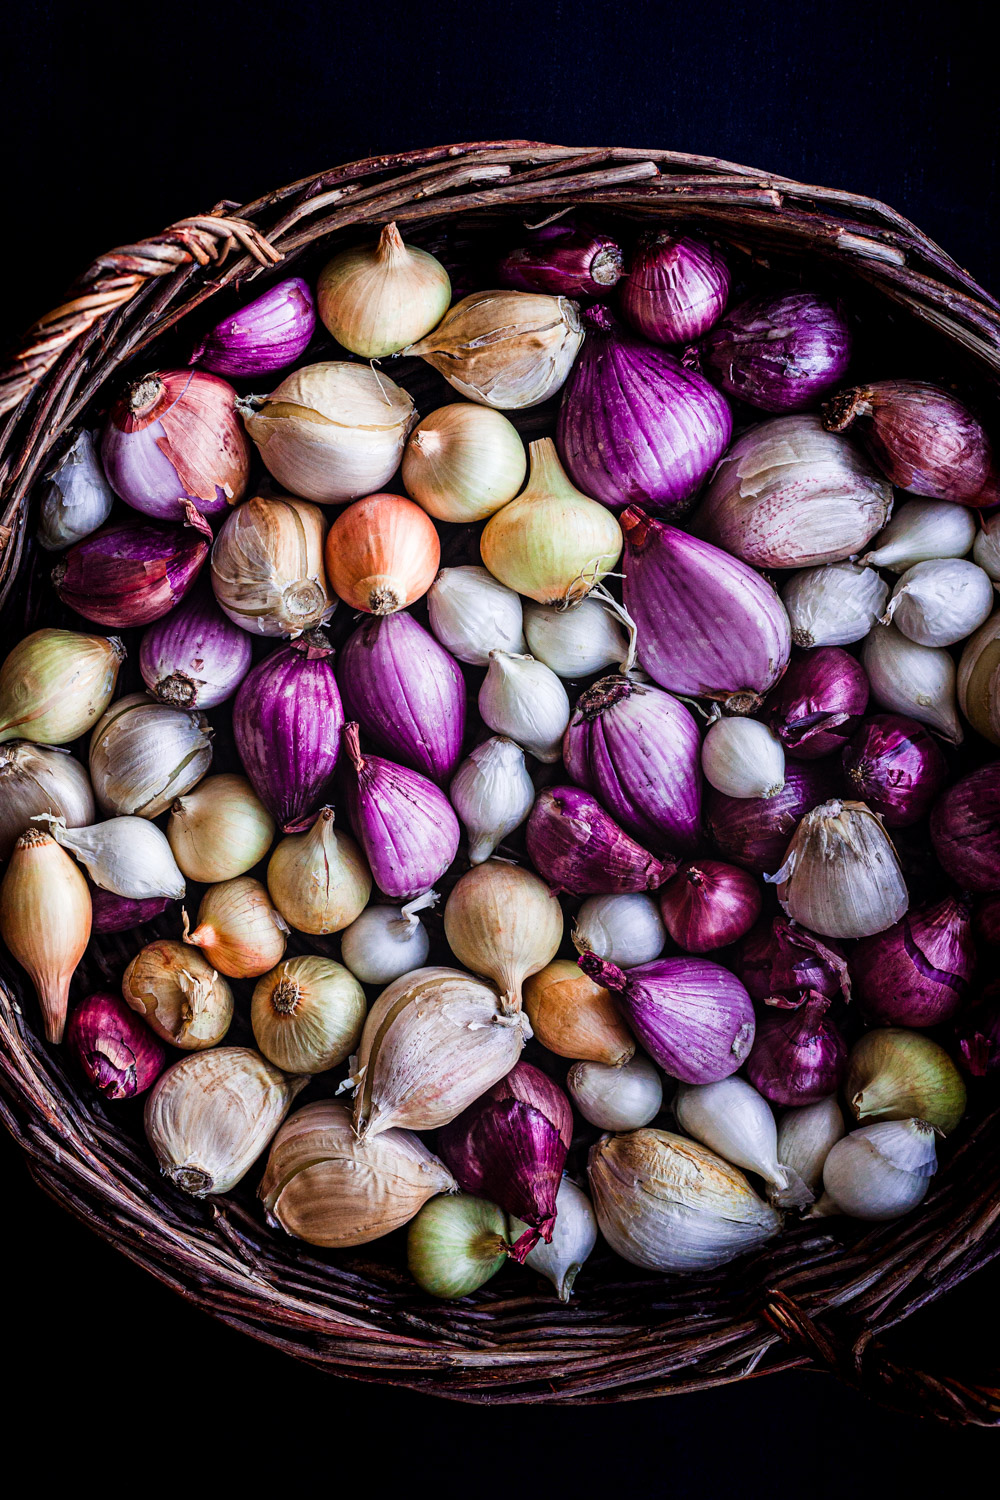 Ingredient shot of all different colors of shallots in a basket, overhear shot.